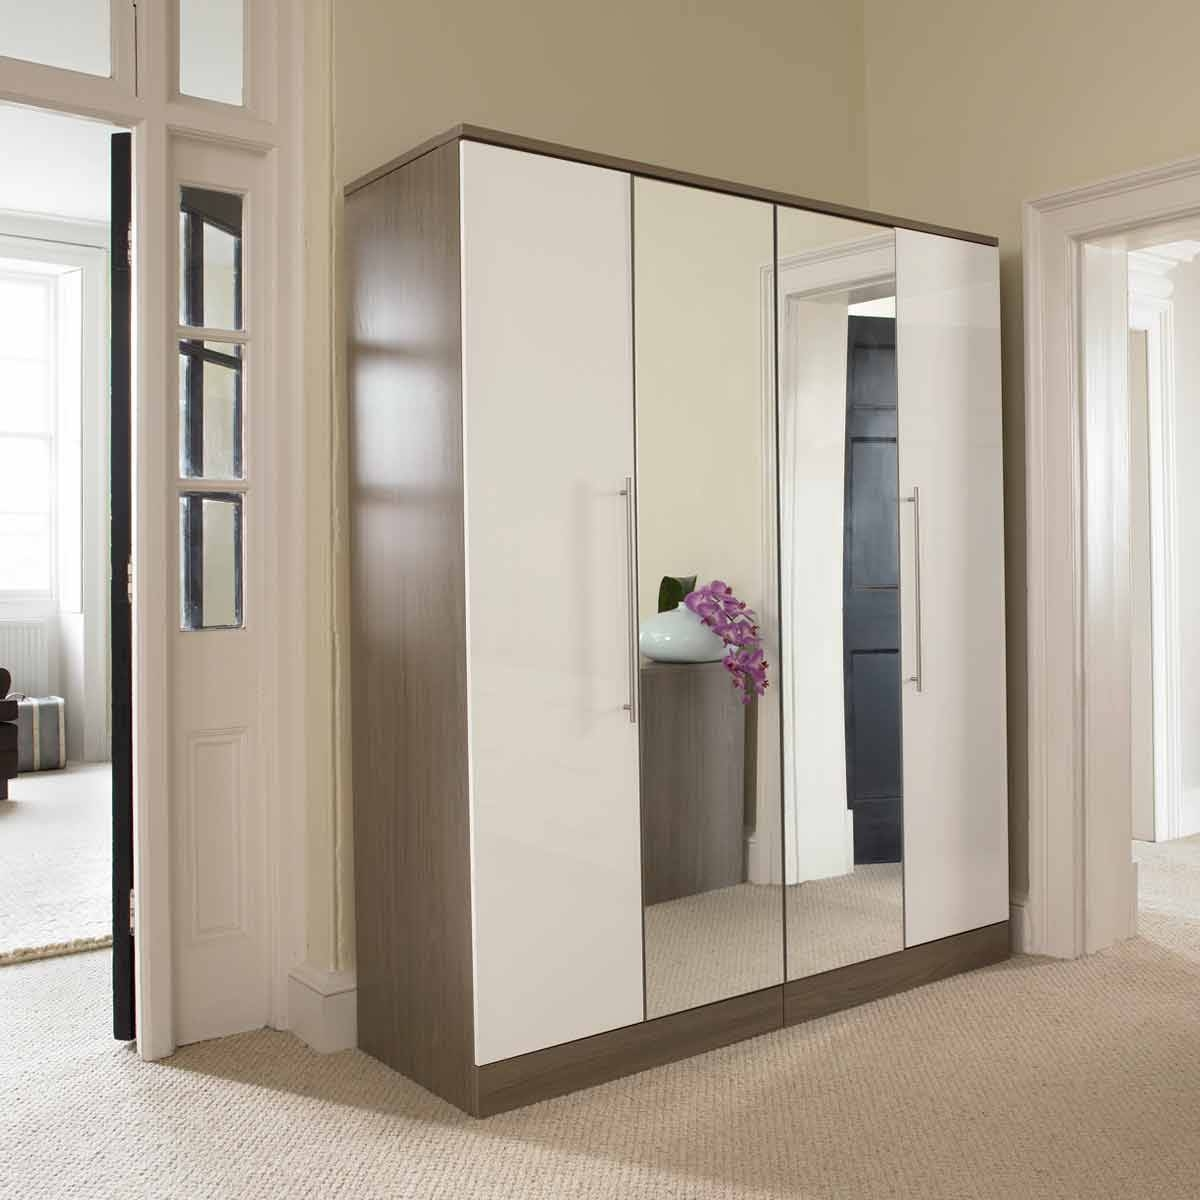 Create A New Look For Your Room With These Closet Door Ideas In Dark Wood Wardrobe With Mirror (View 12 of 30)